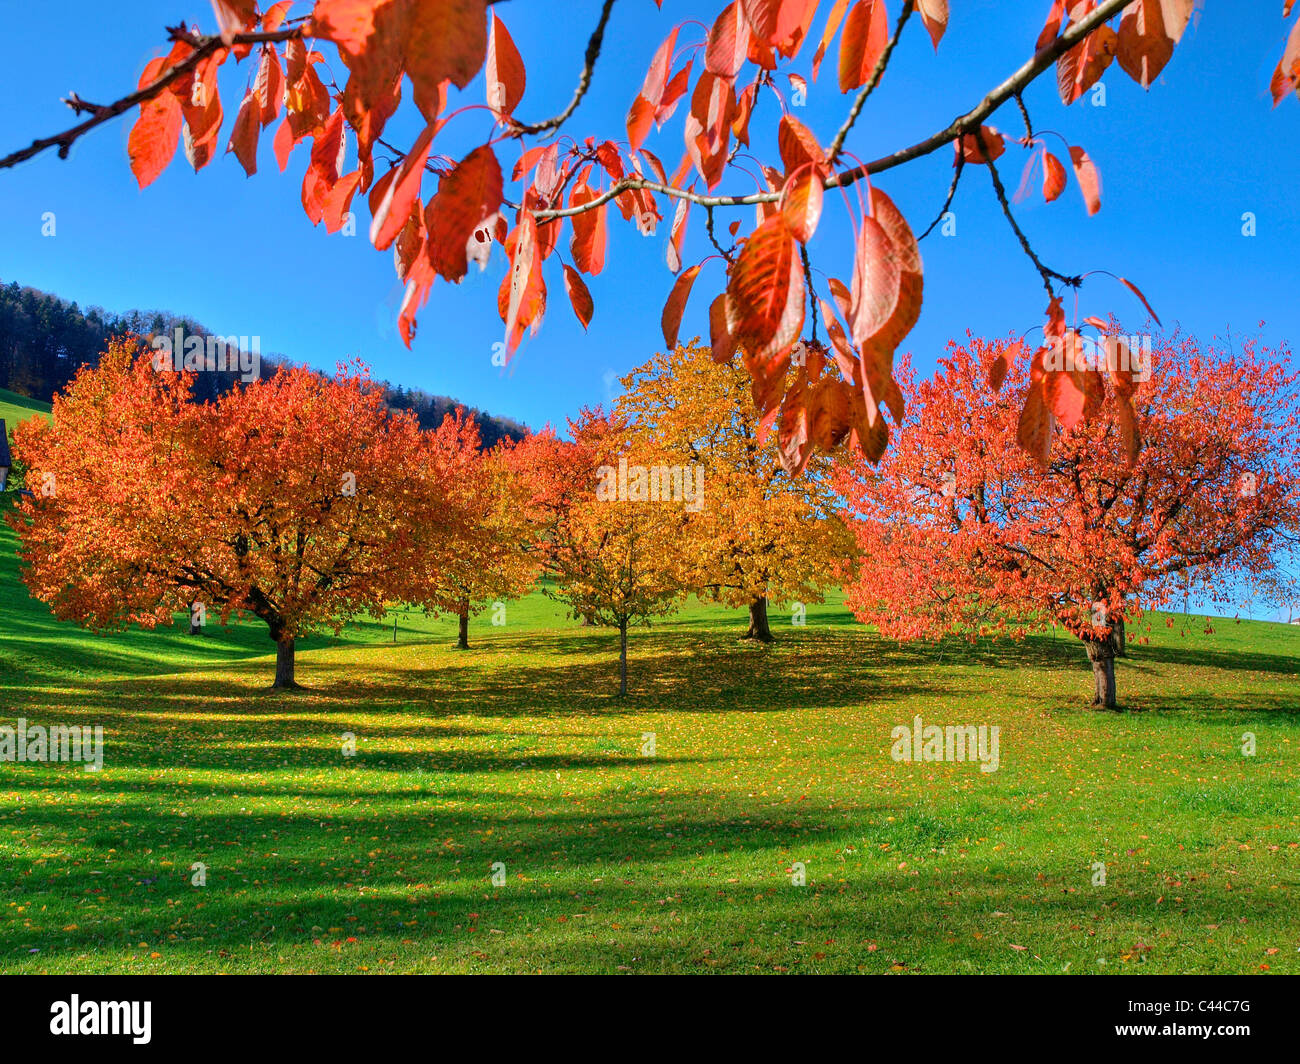 Trees, leaves, autumn, canton Zurich, Switzerland, autumn trees, colors, - Stock Image